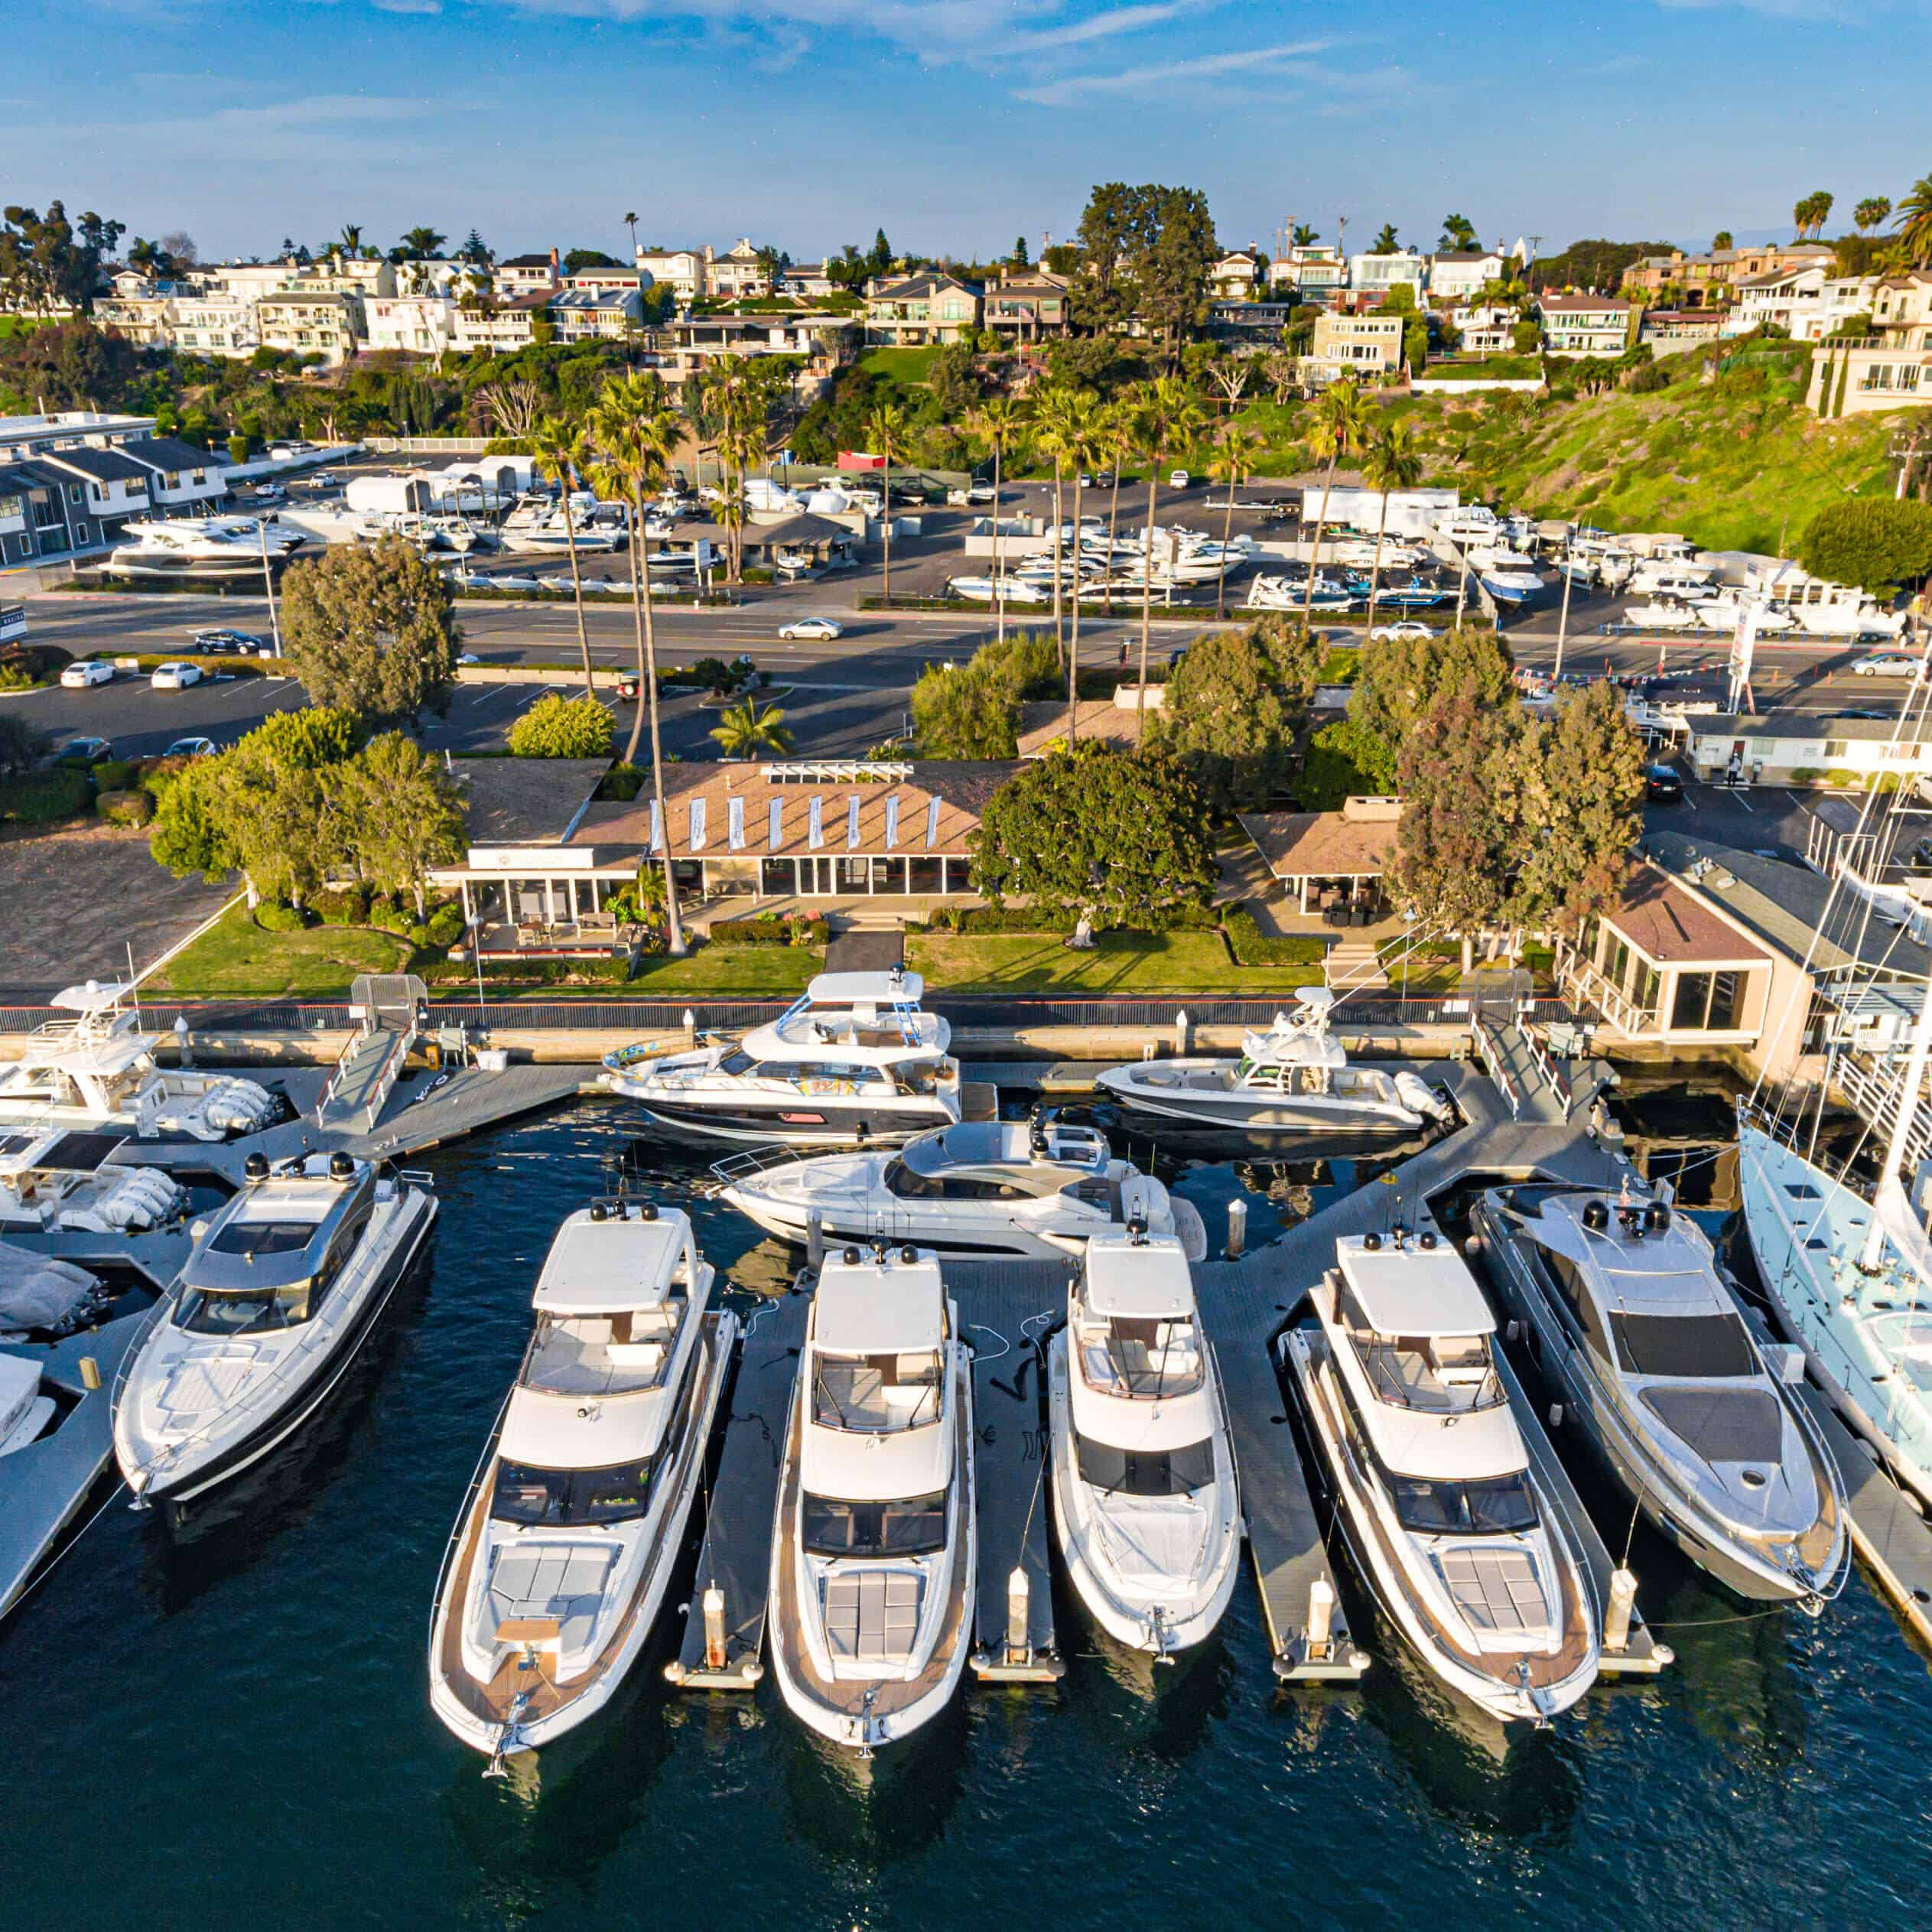 https://suncountrymarinegroup.com/wp-content/uploads/2020/06/sun_country_yachts-newport-beach-storefront.jpg